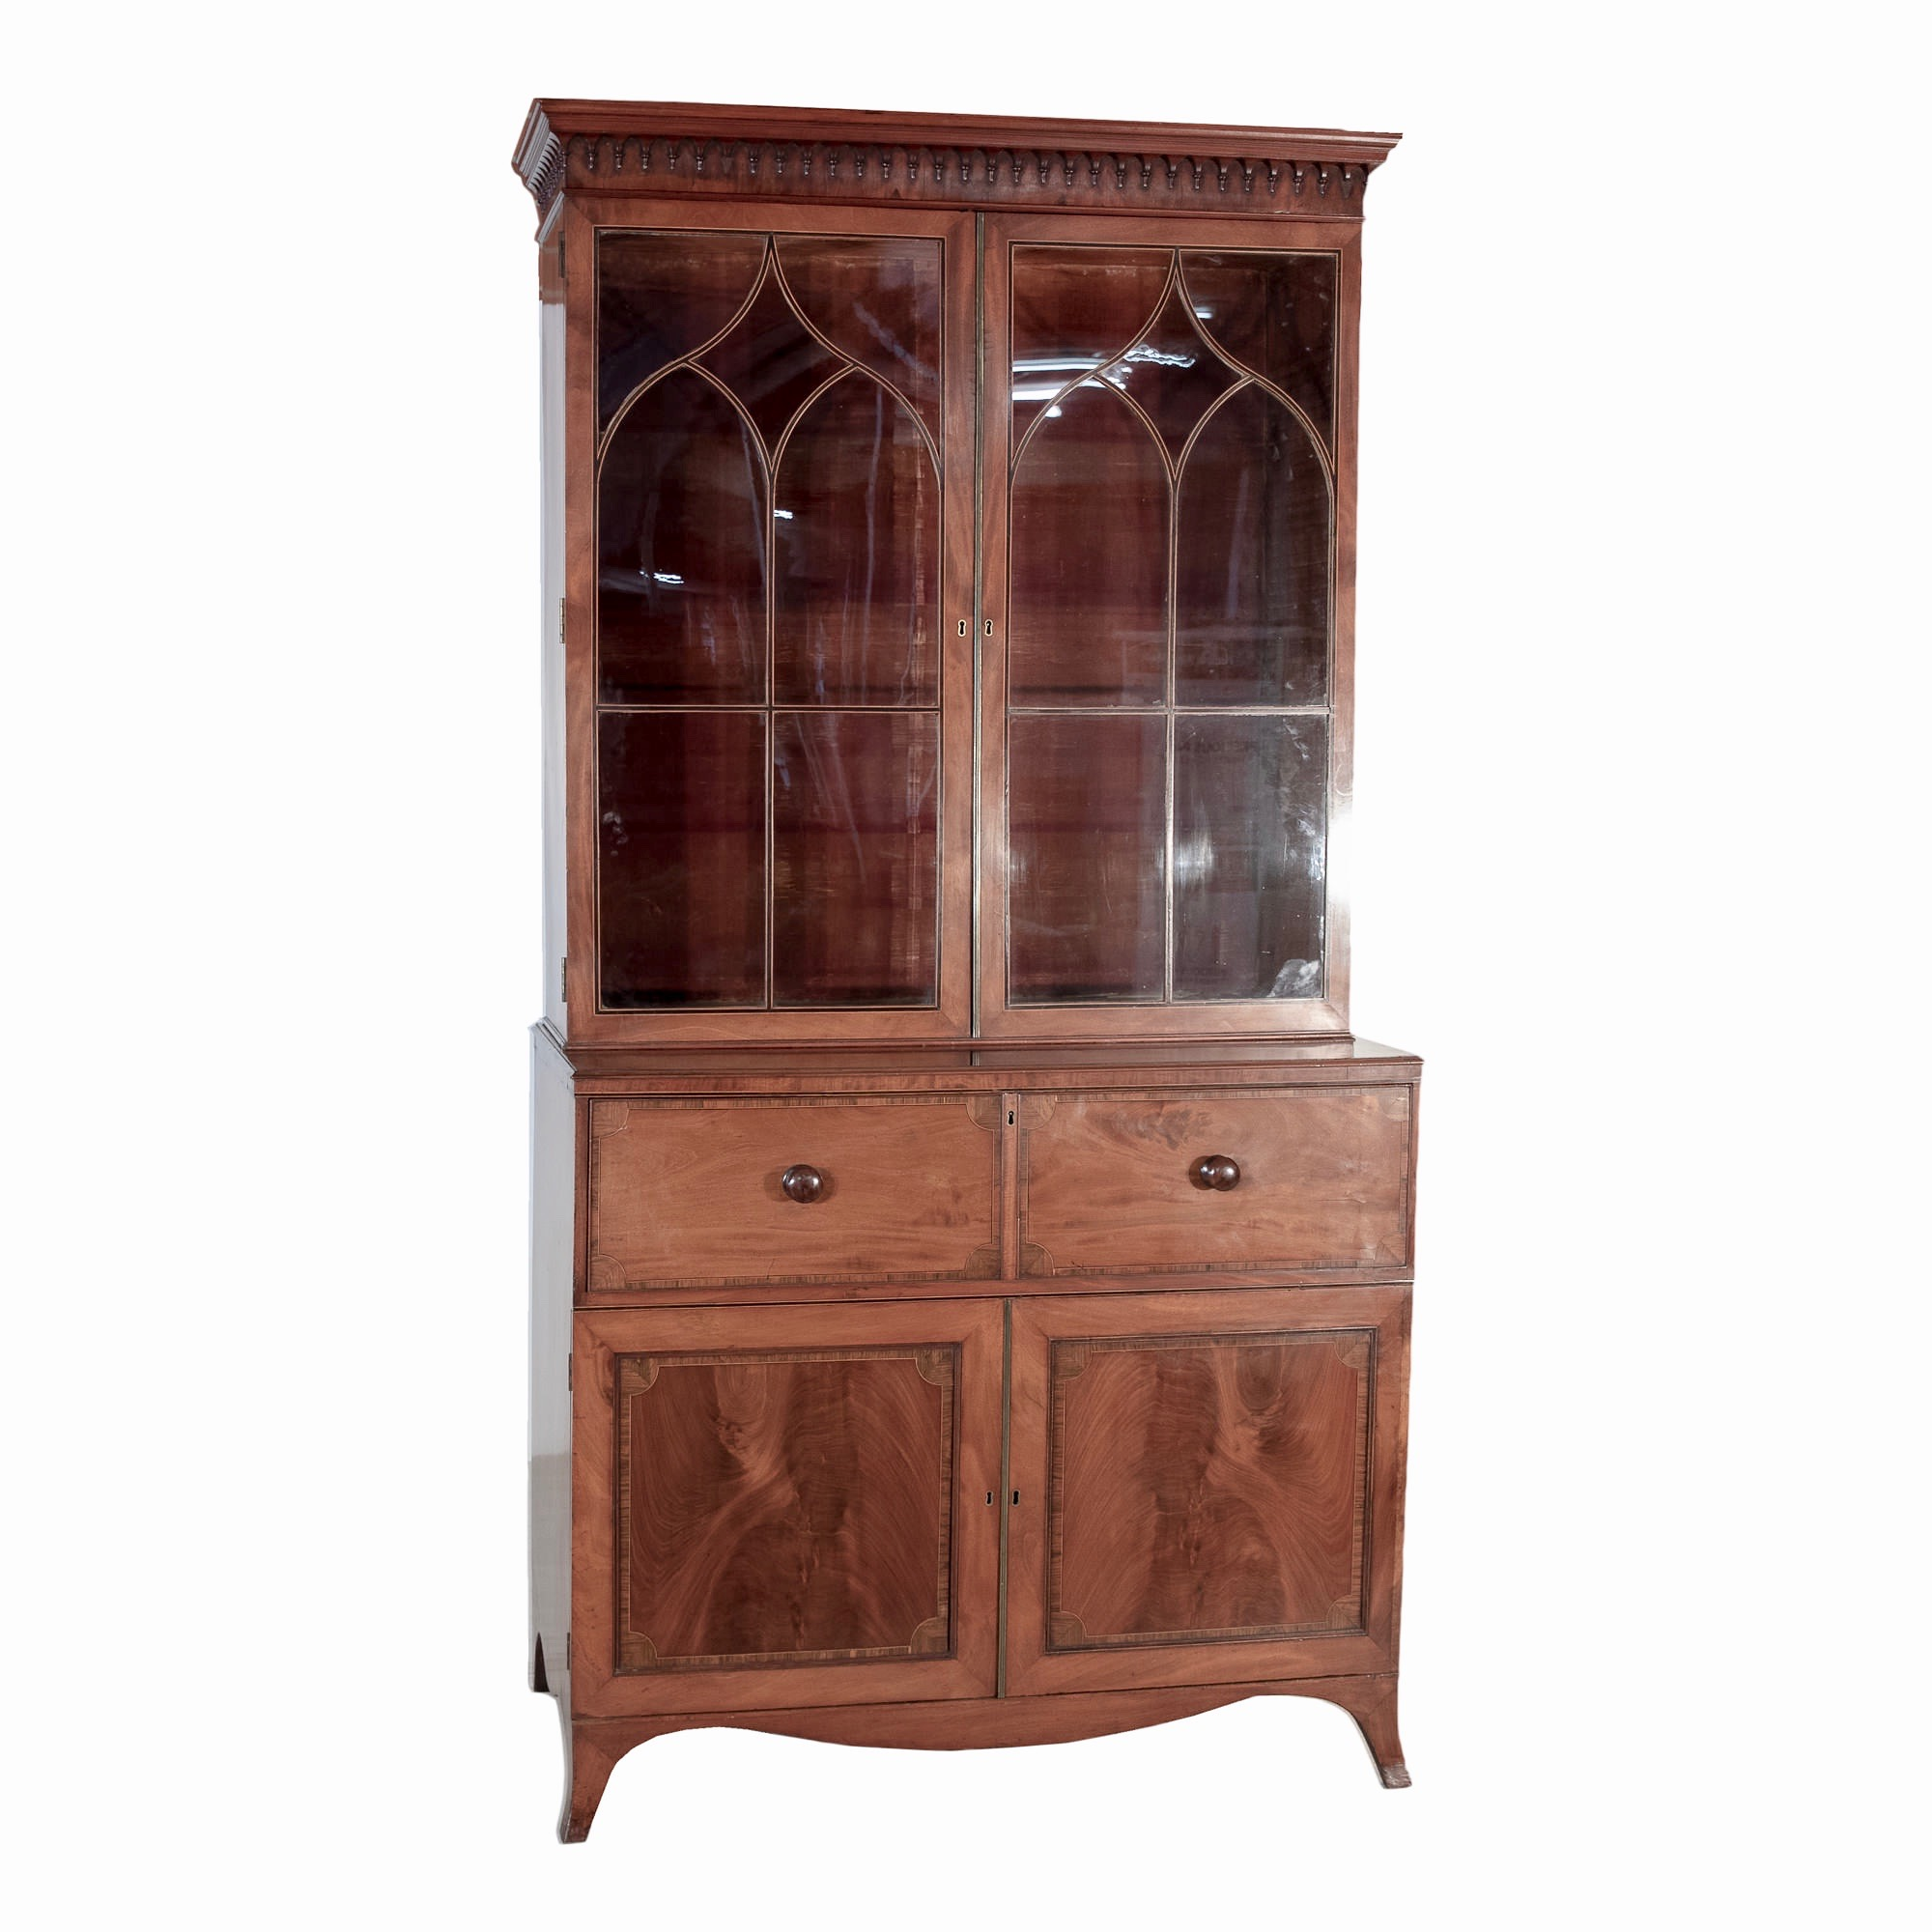 'George III String Inlaid and Crossbanded Mahogany Secretaire Bookcase with Cupboard Map Slides Circa 1800'